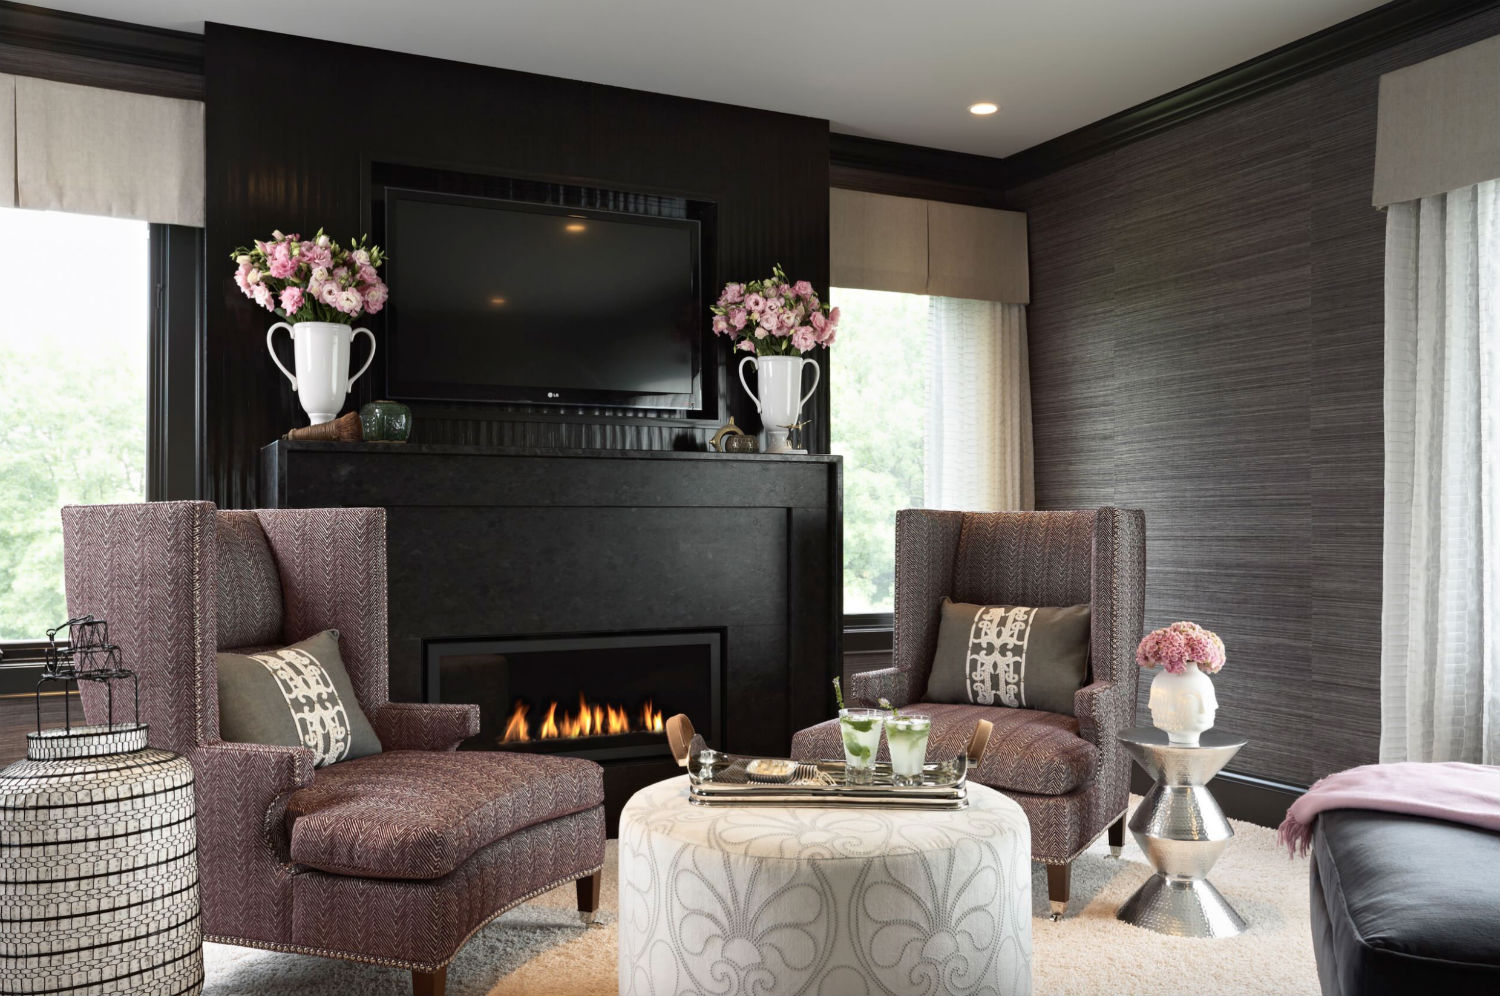 5 Black Wall Design Ideas - Decorating with Black